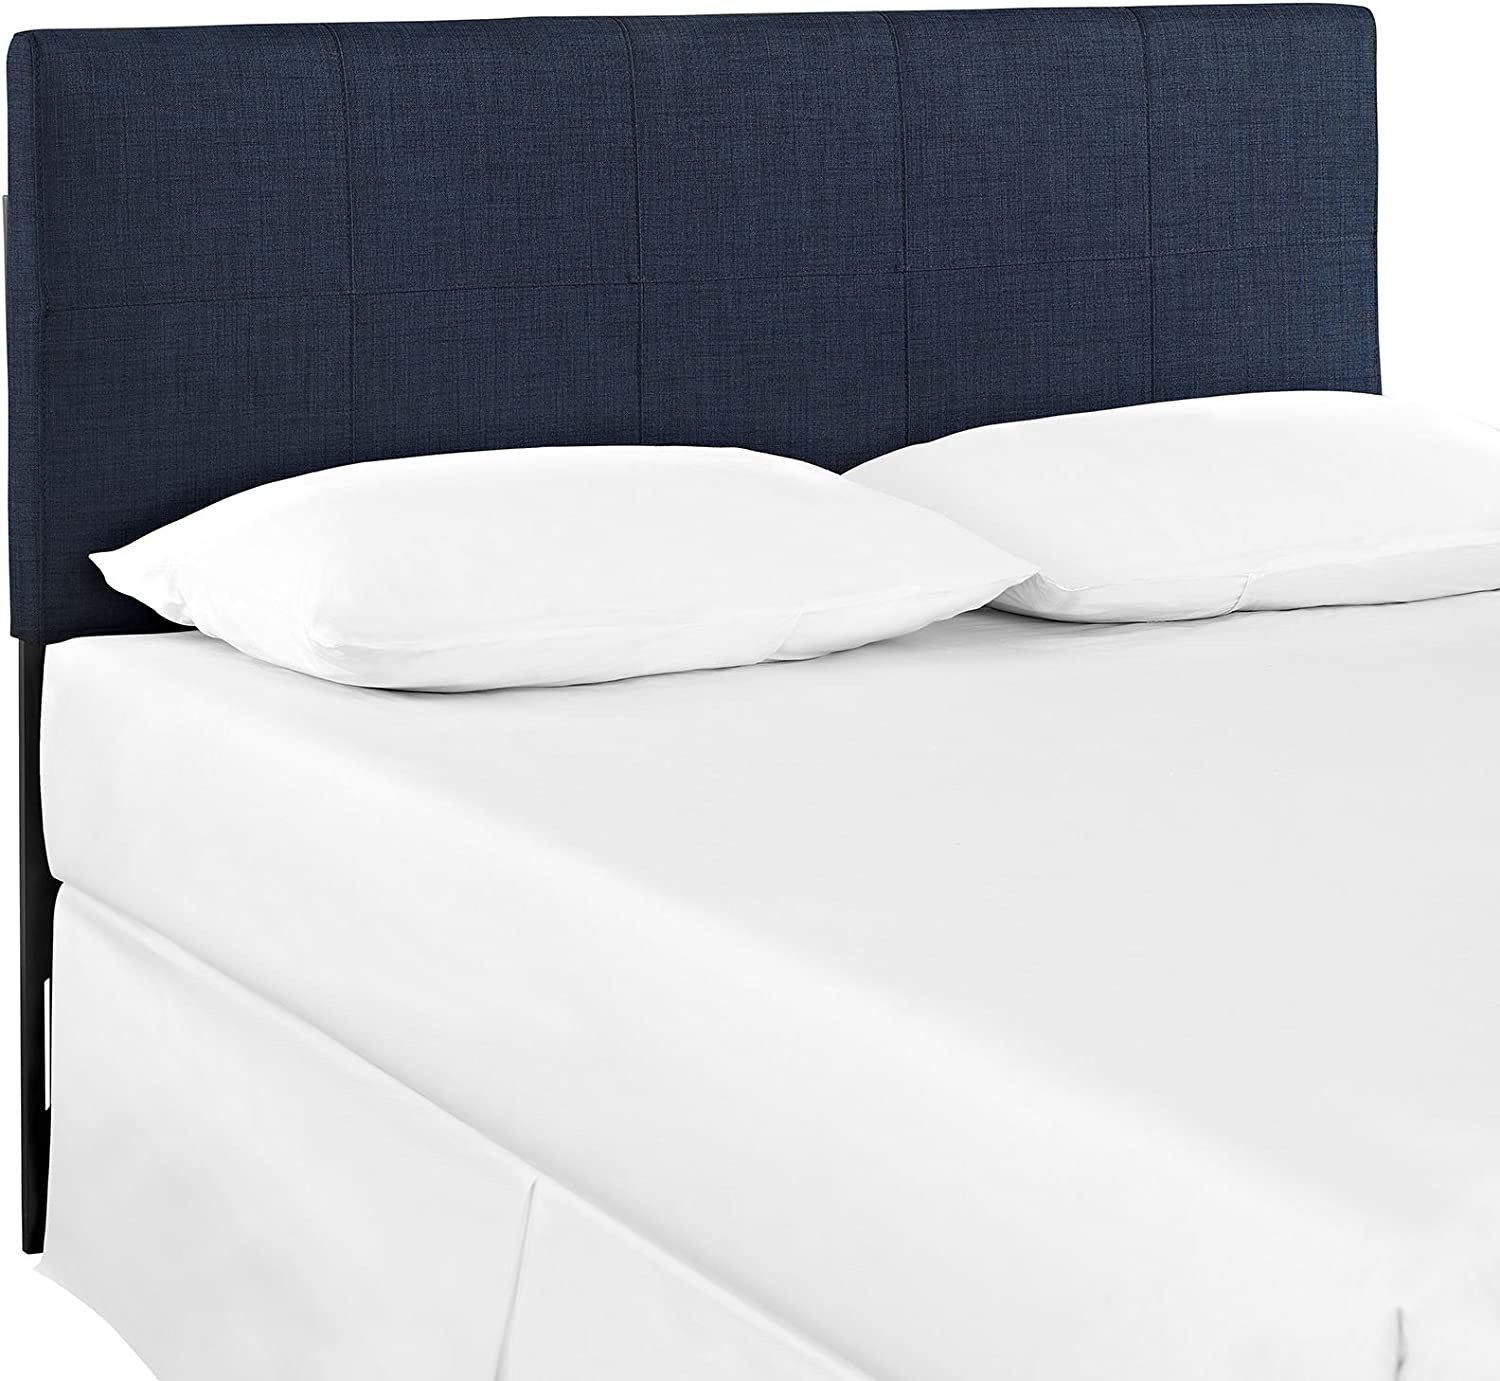 Modway Oliver Linen Fabric Upholstered Queen Headboard in Navy